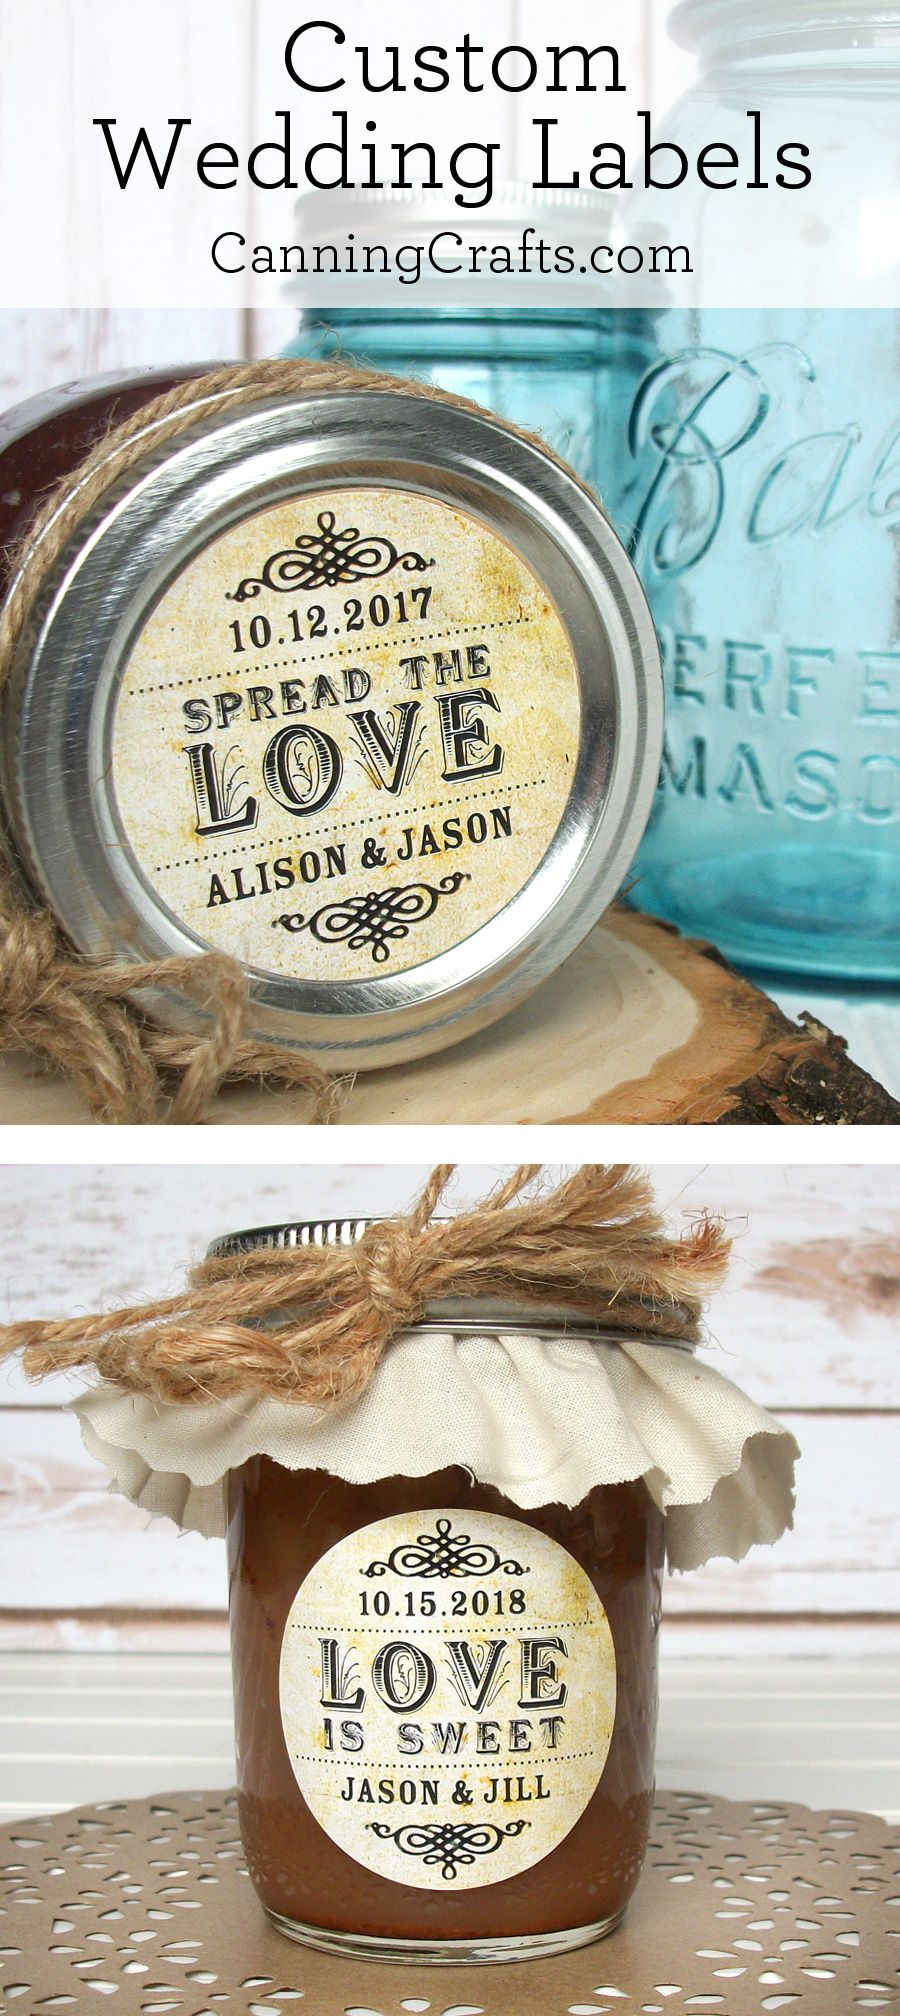 Custom Vintage Wedding Favor Labels Personalized Spread The Love